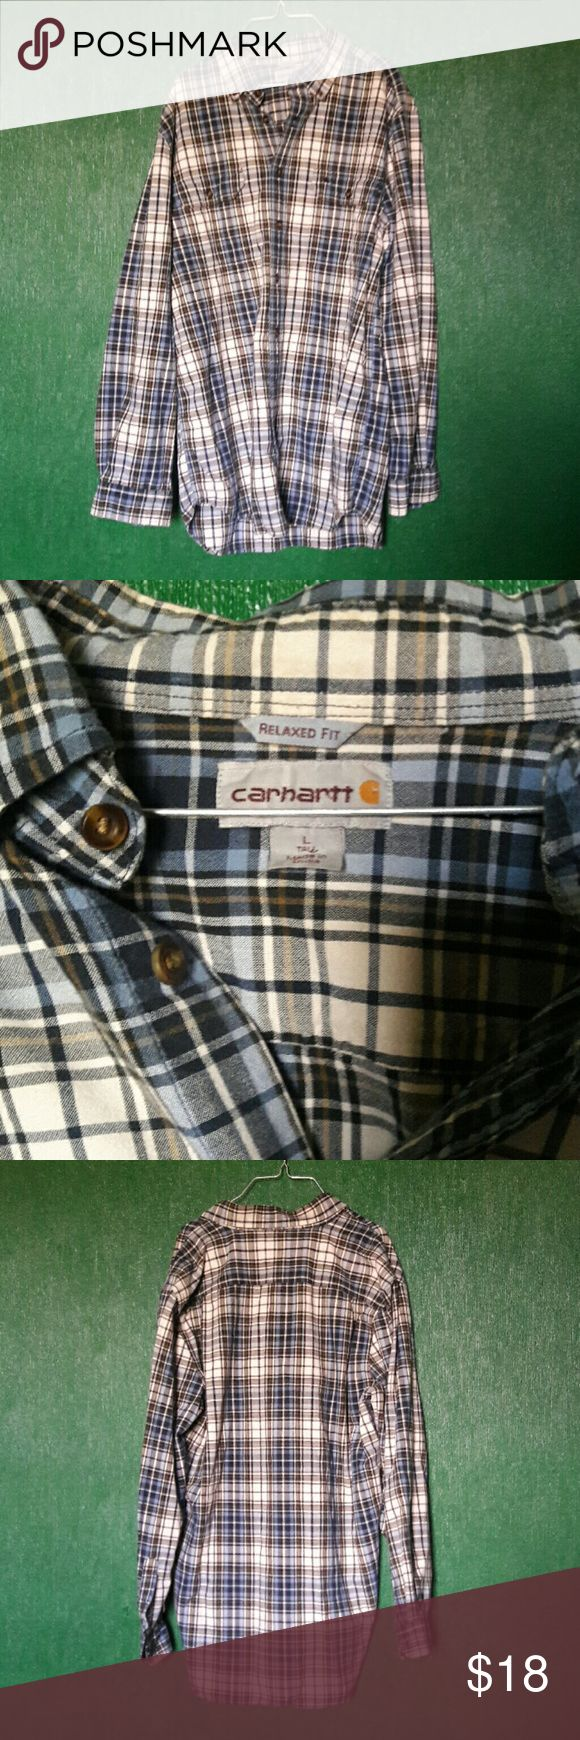 "Carhartt plaid cotton shirt 100% cotton plaid shirt. Brown, blue and white plaid print. Excellent condition. Thick material, great for spring layering.  Measures 33"" long, 23.5"" armpit to armpit, sleeve 25"" shoulder hem to cuff  Size is Large Tall Carhartt Shirts Casual Button Down Shirts"